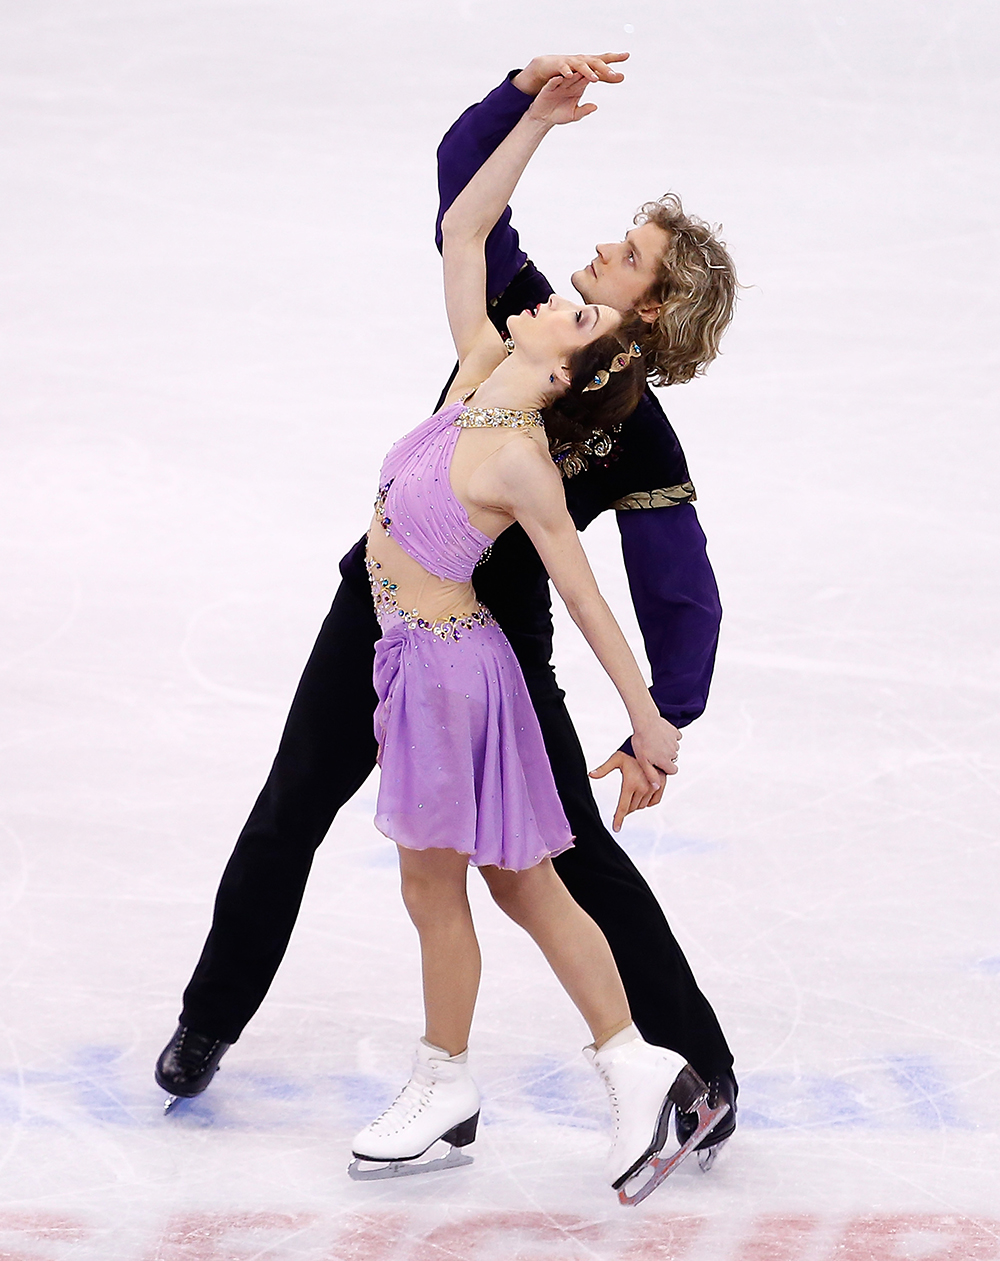 Duo Figure Skaters - Meryl Davis & Charlie White, Photo courtesy of Intimissimi